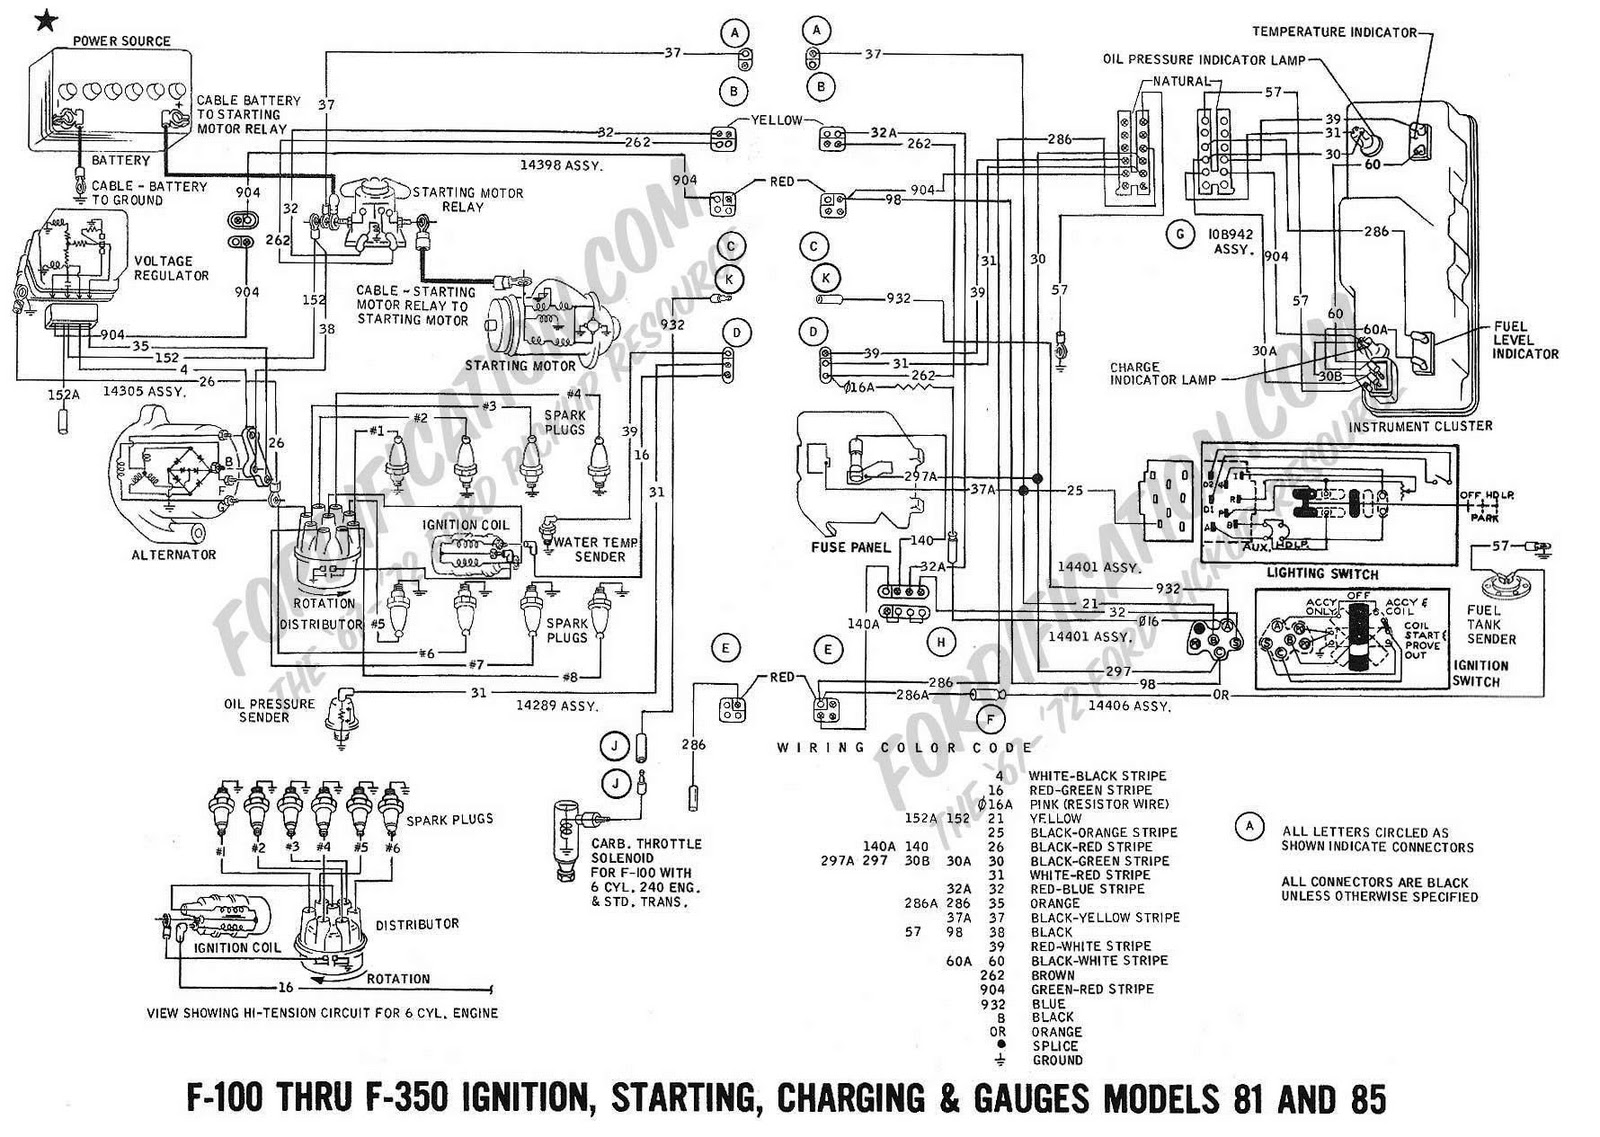 1985 ford f 250 voltage regulator wiring diagram wiring diagram1973 ford f250 wiring diagram wiring diagram 1985 ford f 250 voltage regulator